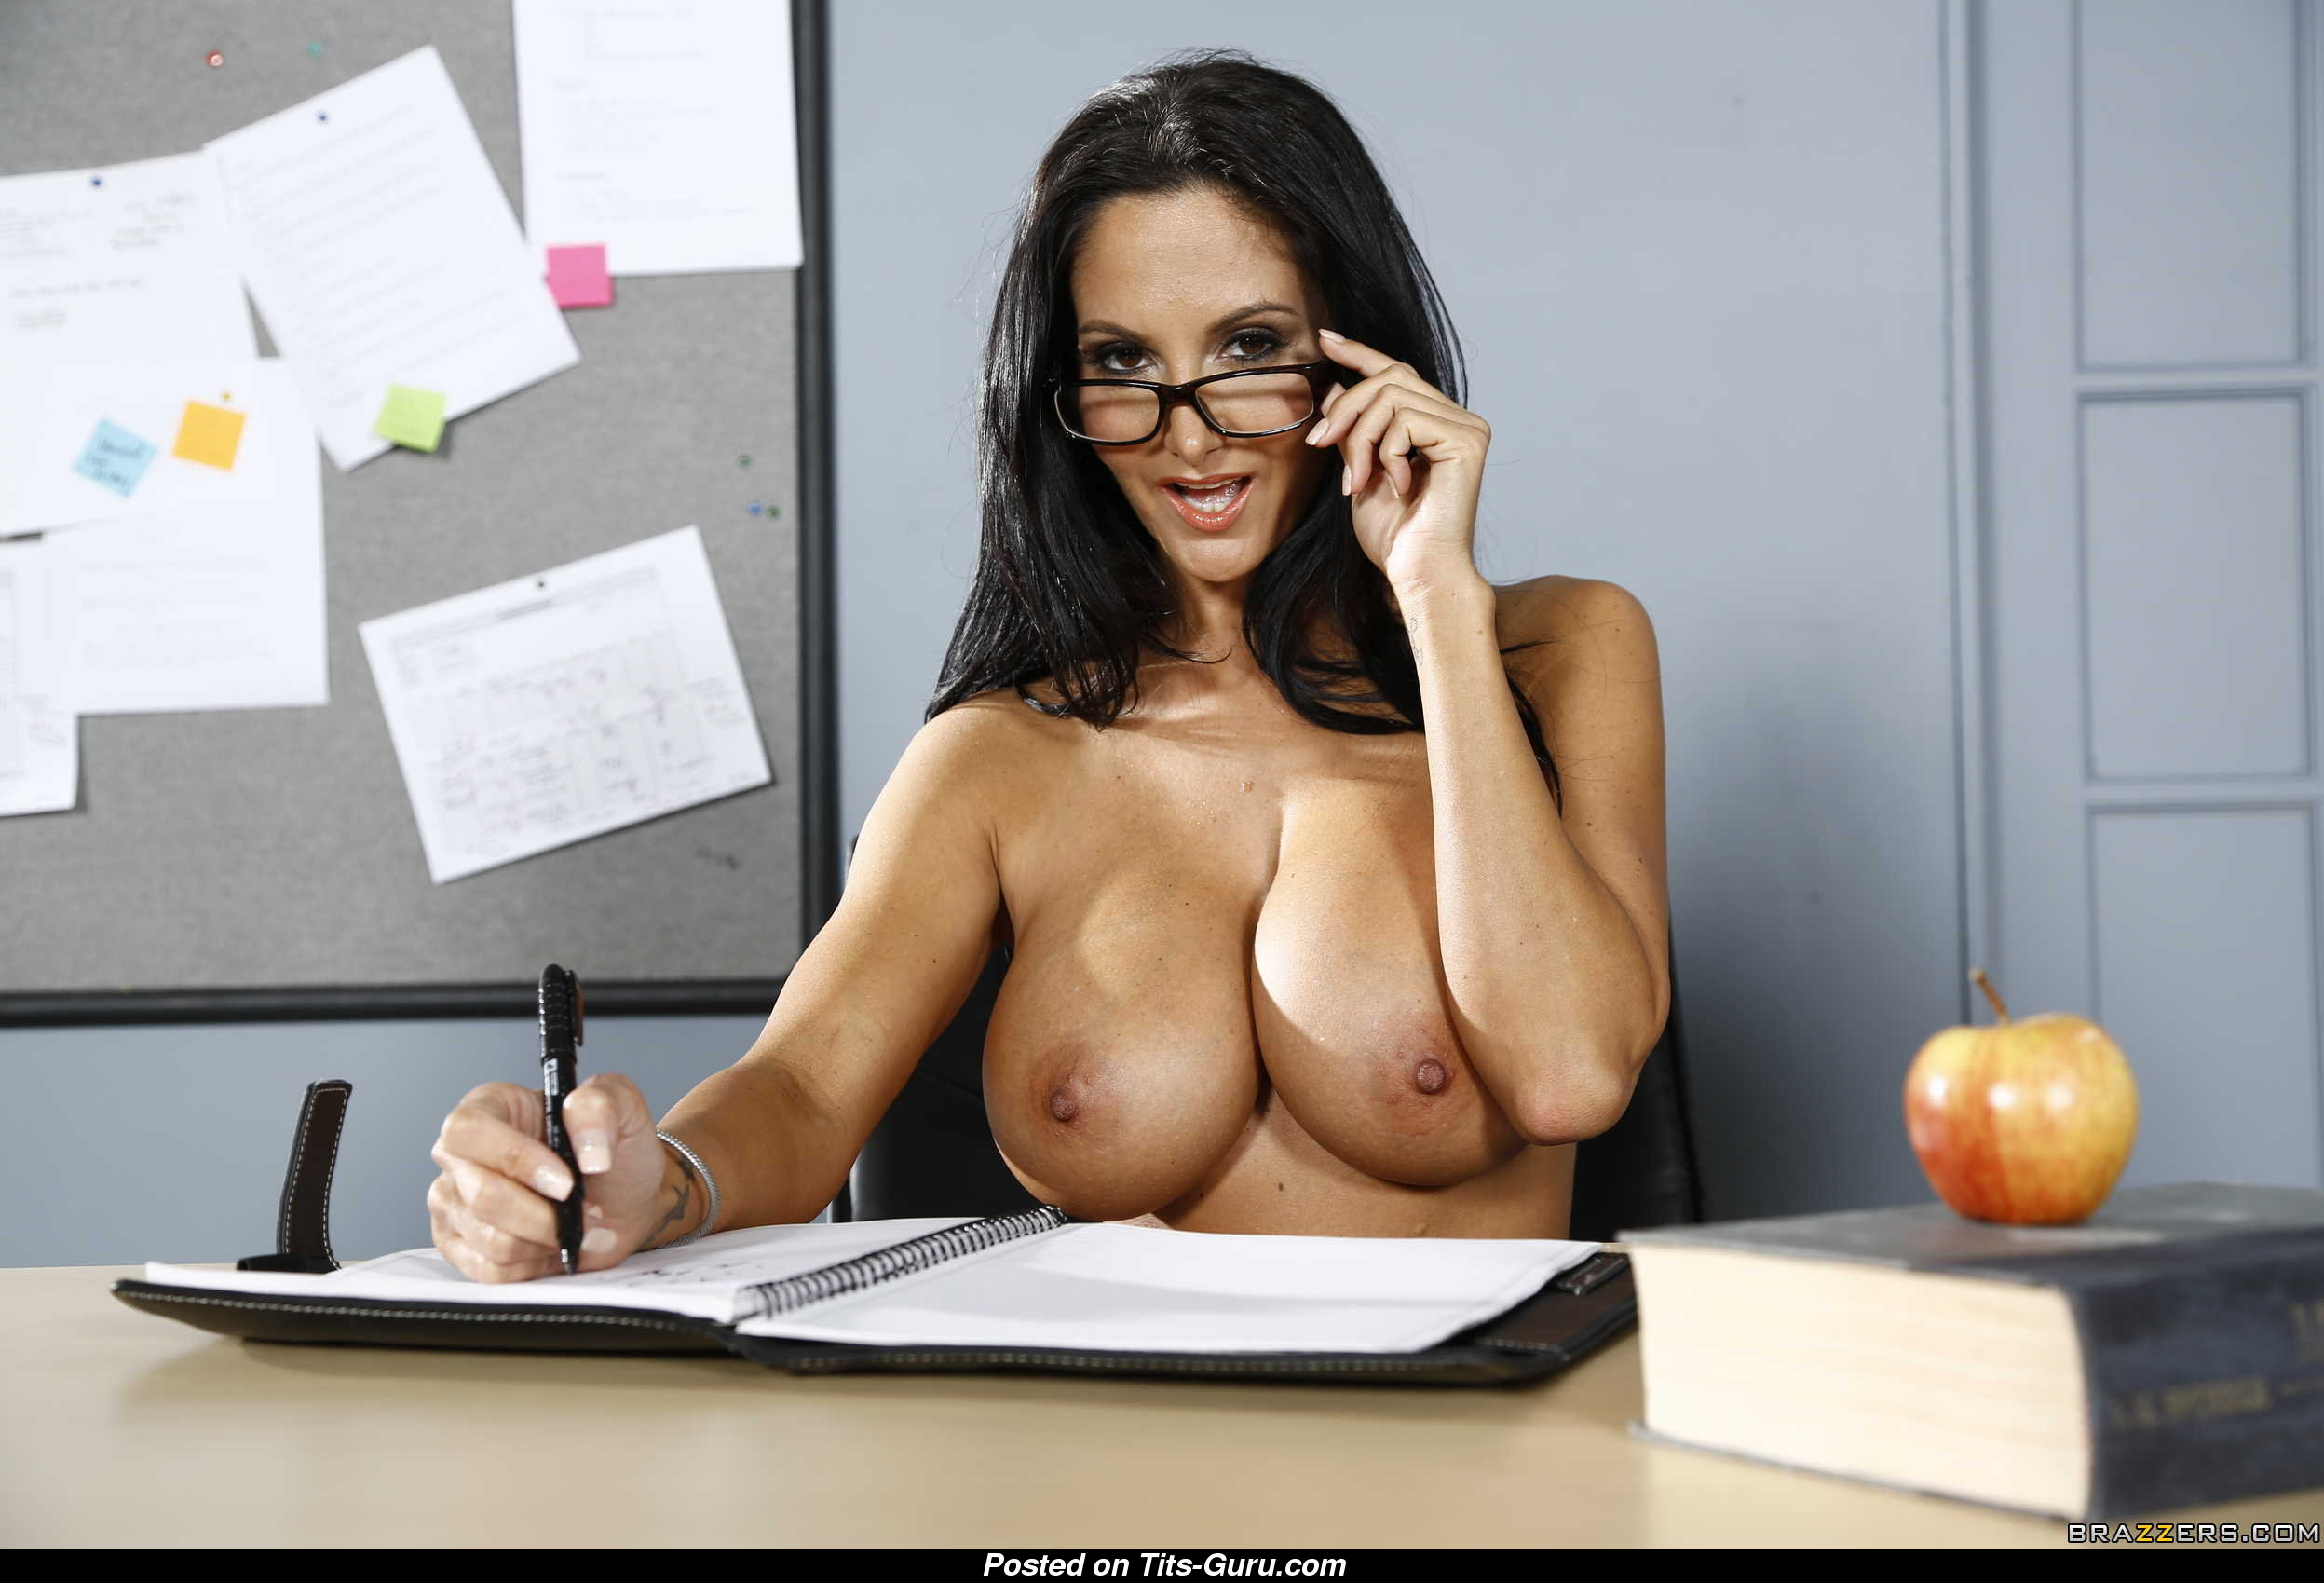 Nerd Boobs Porn babe & nerd with nude c size boobs porn photoshoot [20.06